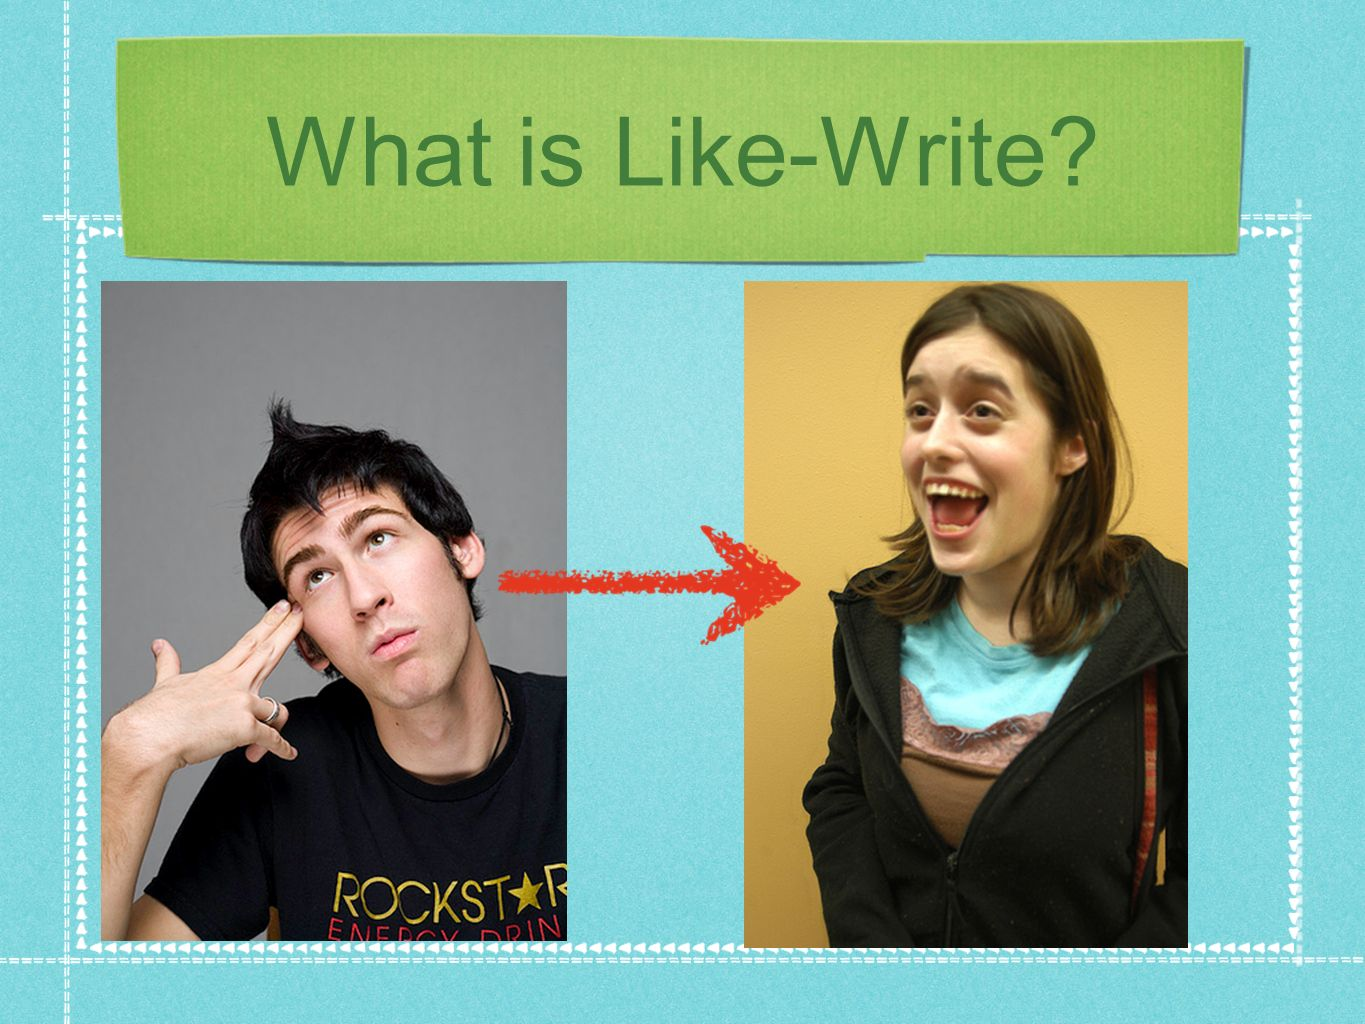 What is Like-Write?